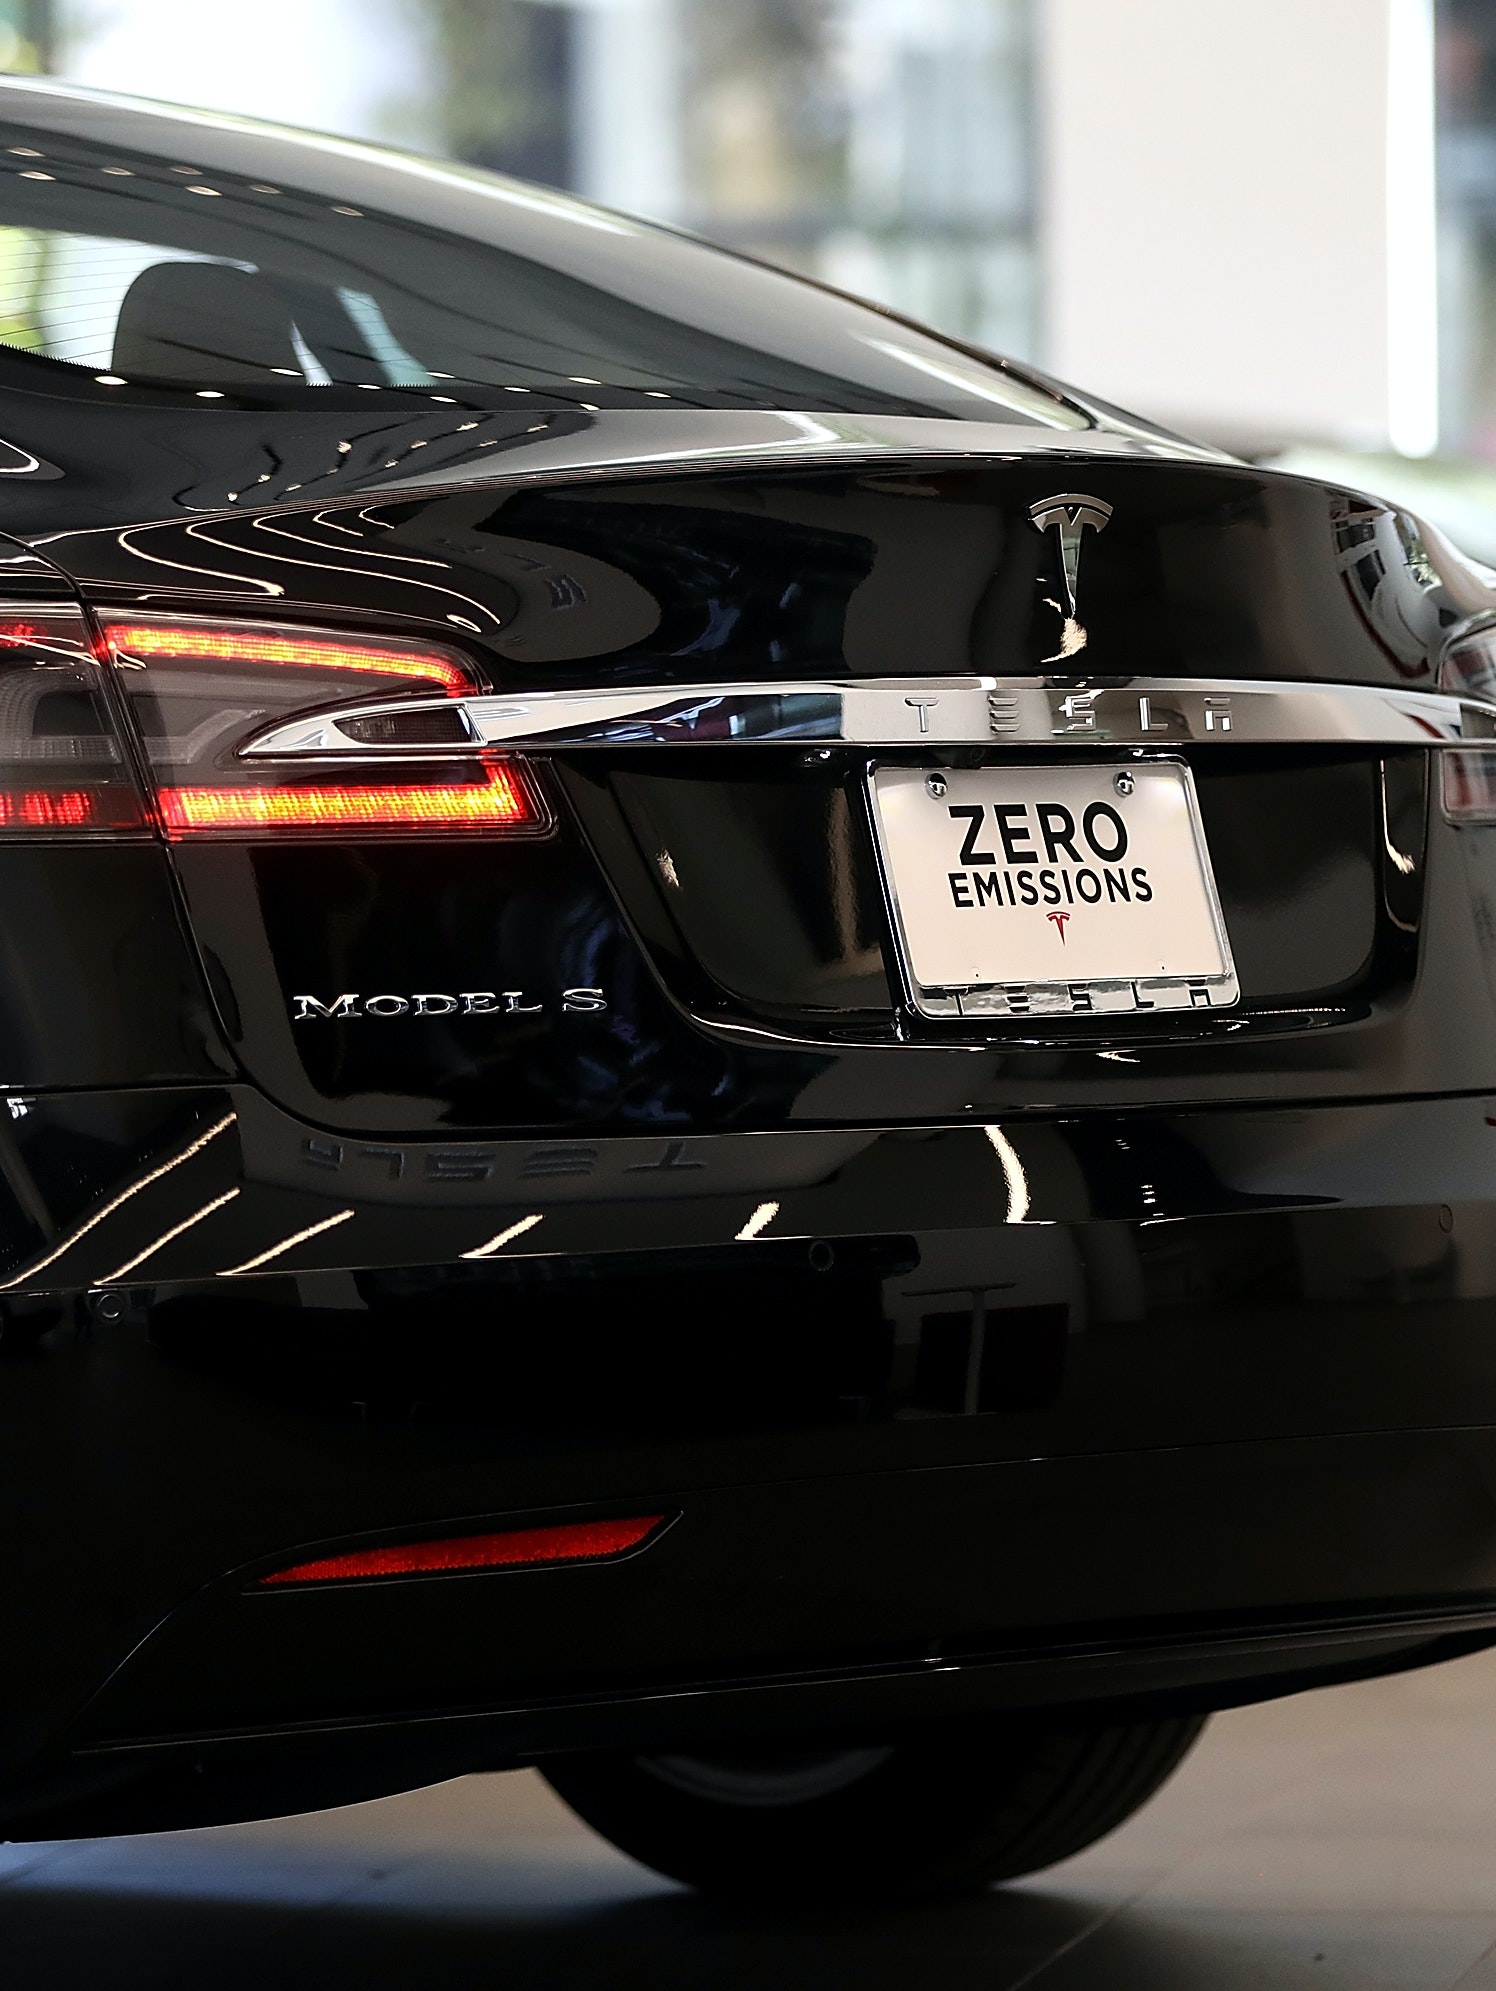 SAN FRANCISCO, CA - AUGUST 10:  A Tesla Model S is displayed inside of the new Tesla flagship facility on August 10, 2016 in San Francisco, California. Tesla is opening a 65,000 square foot store, its largest retail center to date. The facility will offer sales and service of Tesla's electric car line.  (Photo by Justin Sullivan/Getty Images)